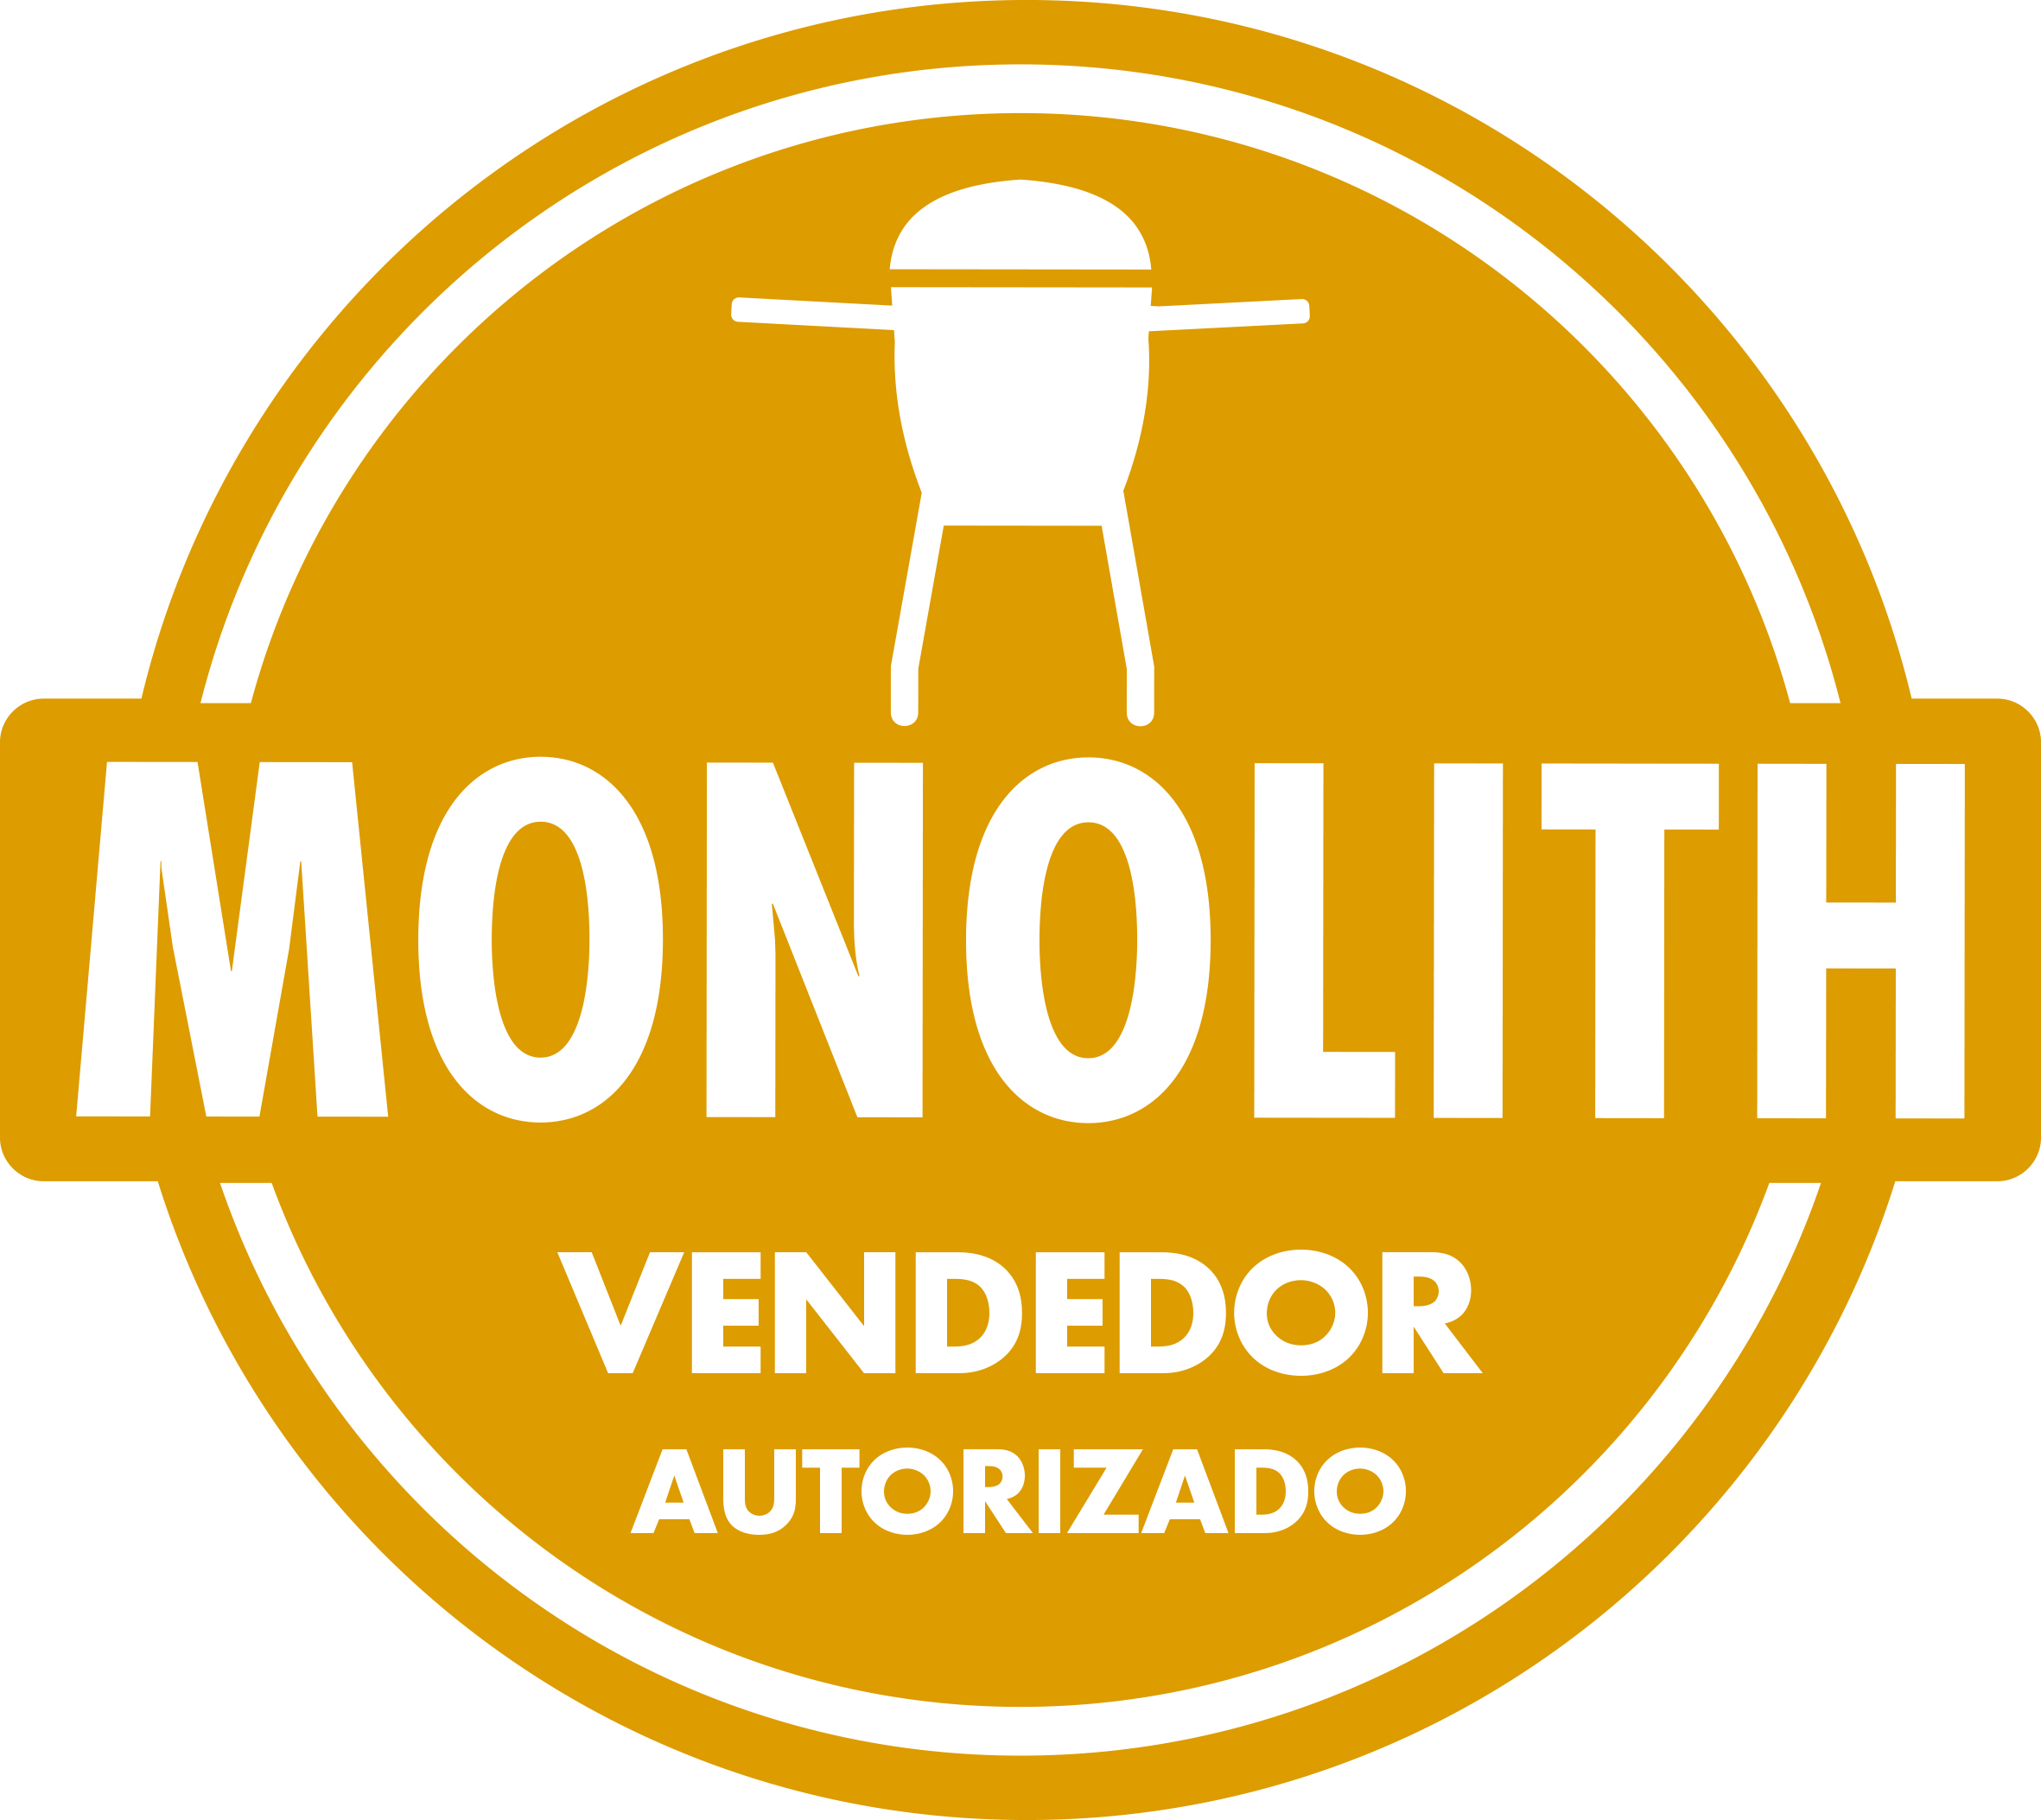 monolith-cas-Sticker-authorisedDealerSpanish-v01.jpg